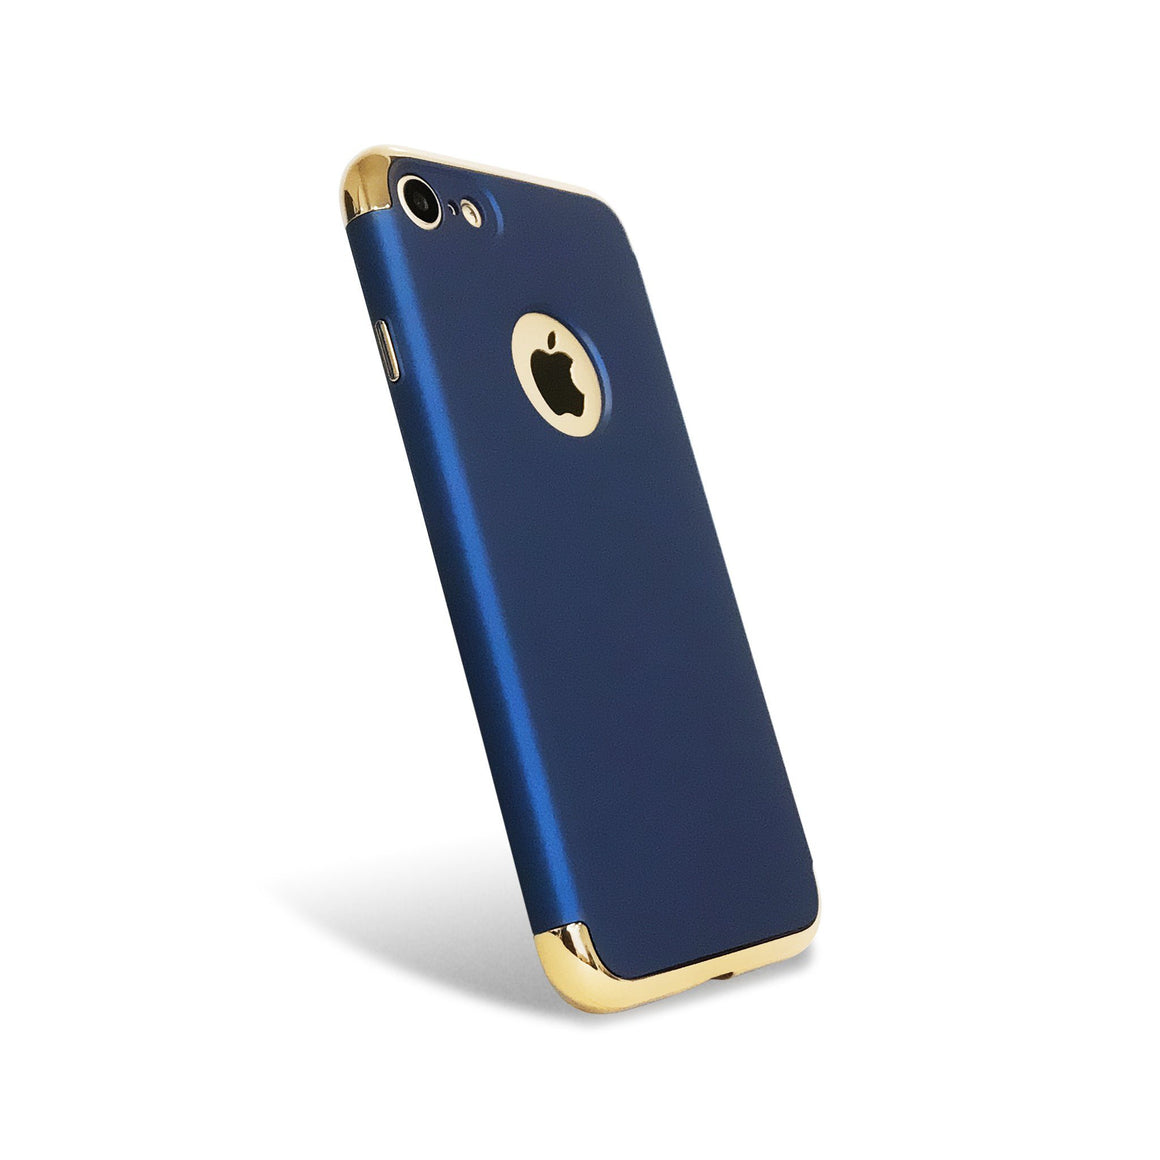 Executive iPhone 7 Armor - LuxArmor | Ultra Thin Protective iPhone Cases